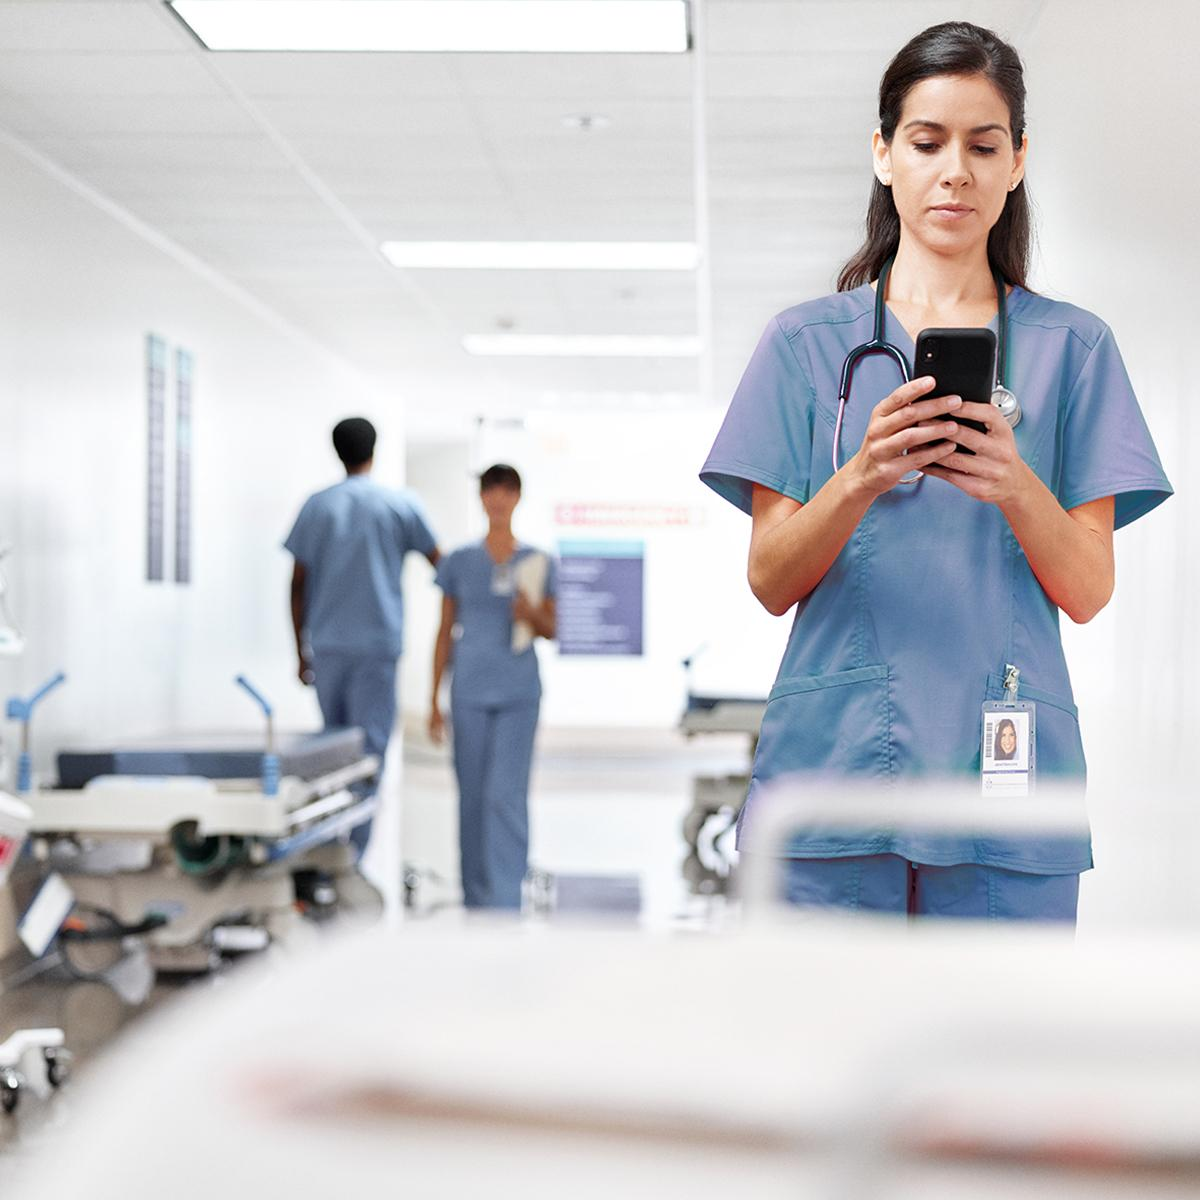 Nurse using smartphone in hospital hallway